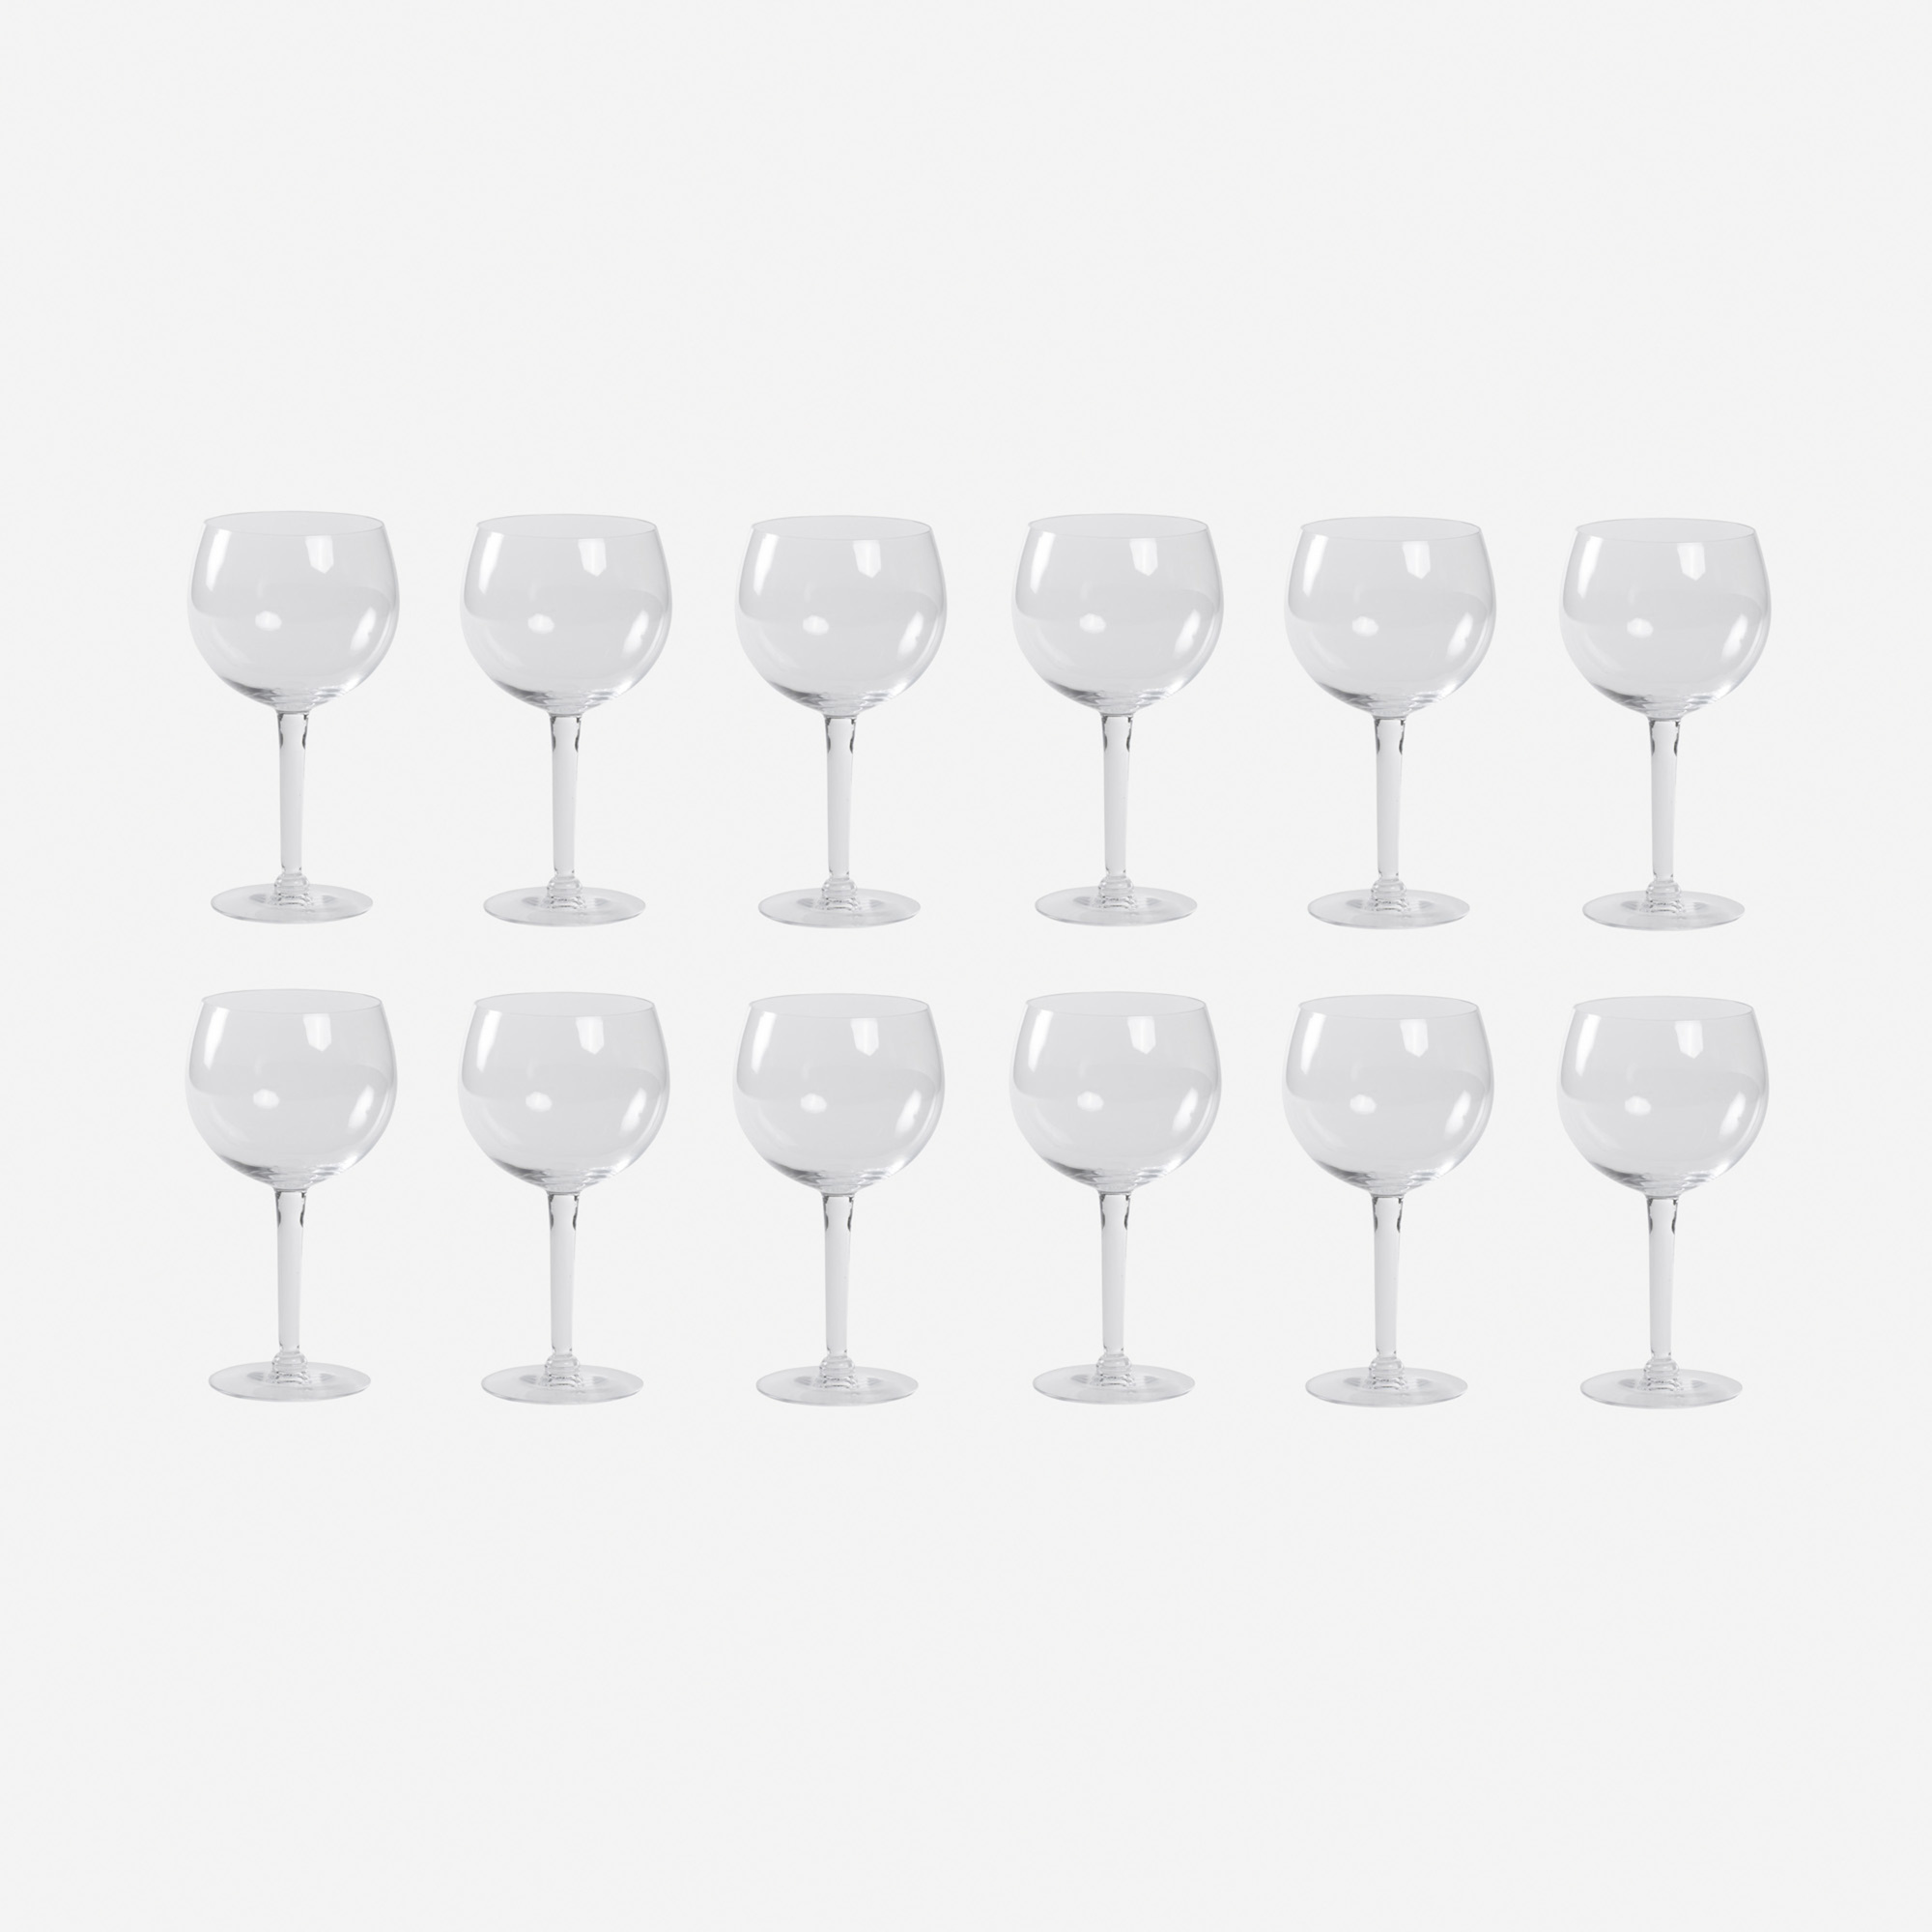 621: Garth and Ada Louise Huxtable / Red Wine glasses from The Four Seasons, set of twelve (1 of 1)